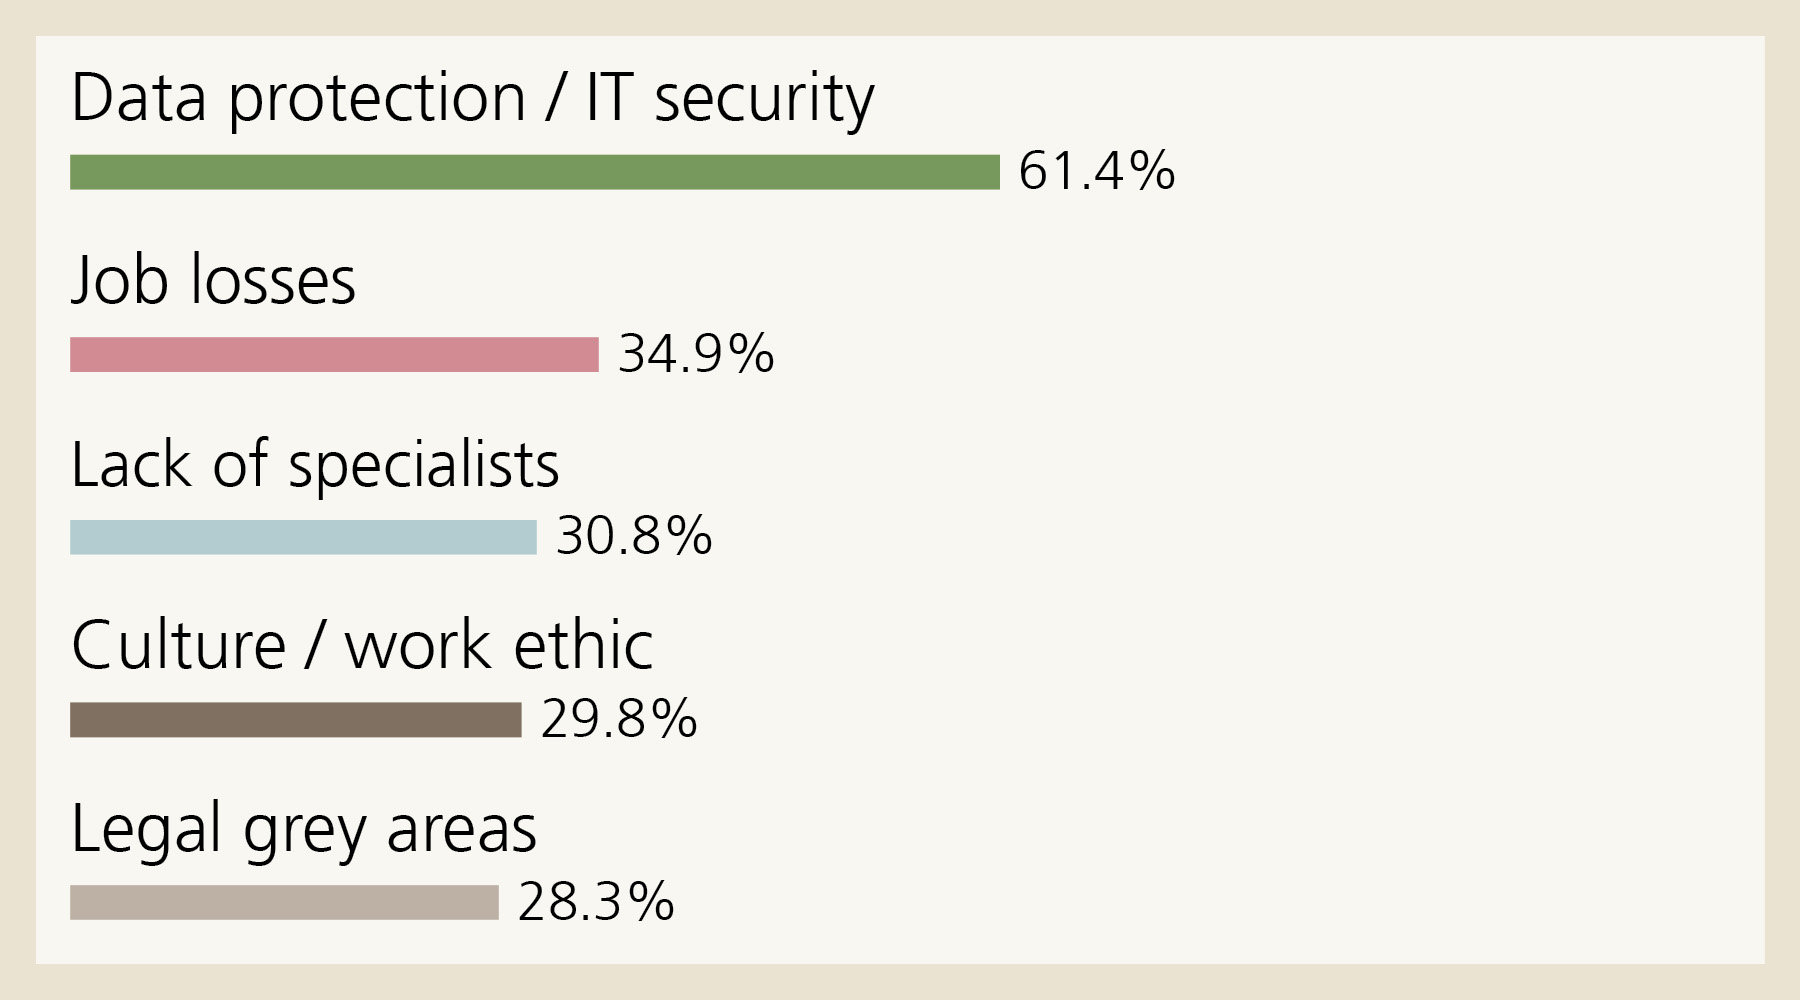 Risks: These are the five risks that small companies fear most in relation to their digital transformation: Data protection / IT security 61.4%, Job losses 34.9%, Lack of specialists 30.8%, Culture / work ethic 29.8%, Legal grey areas 28.3%.